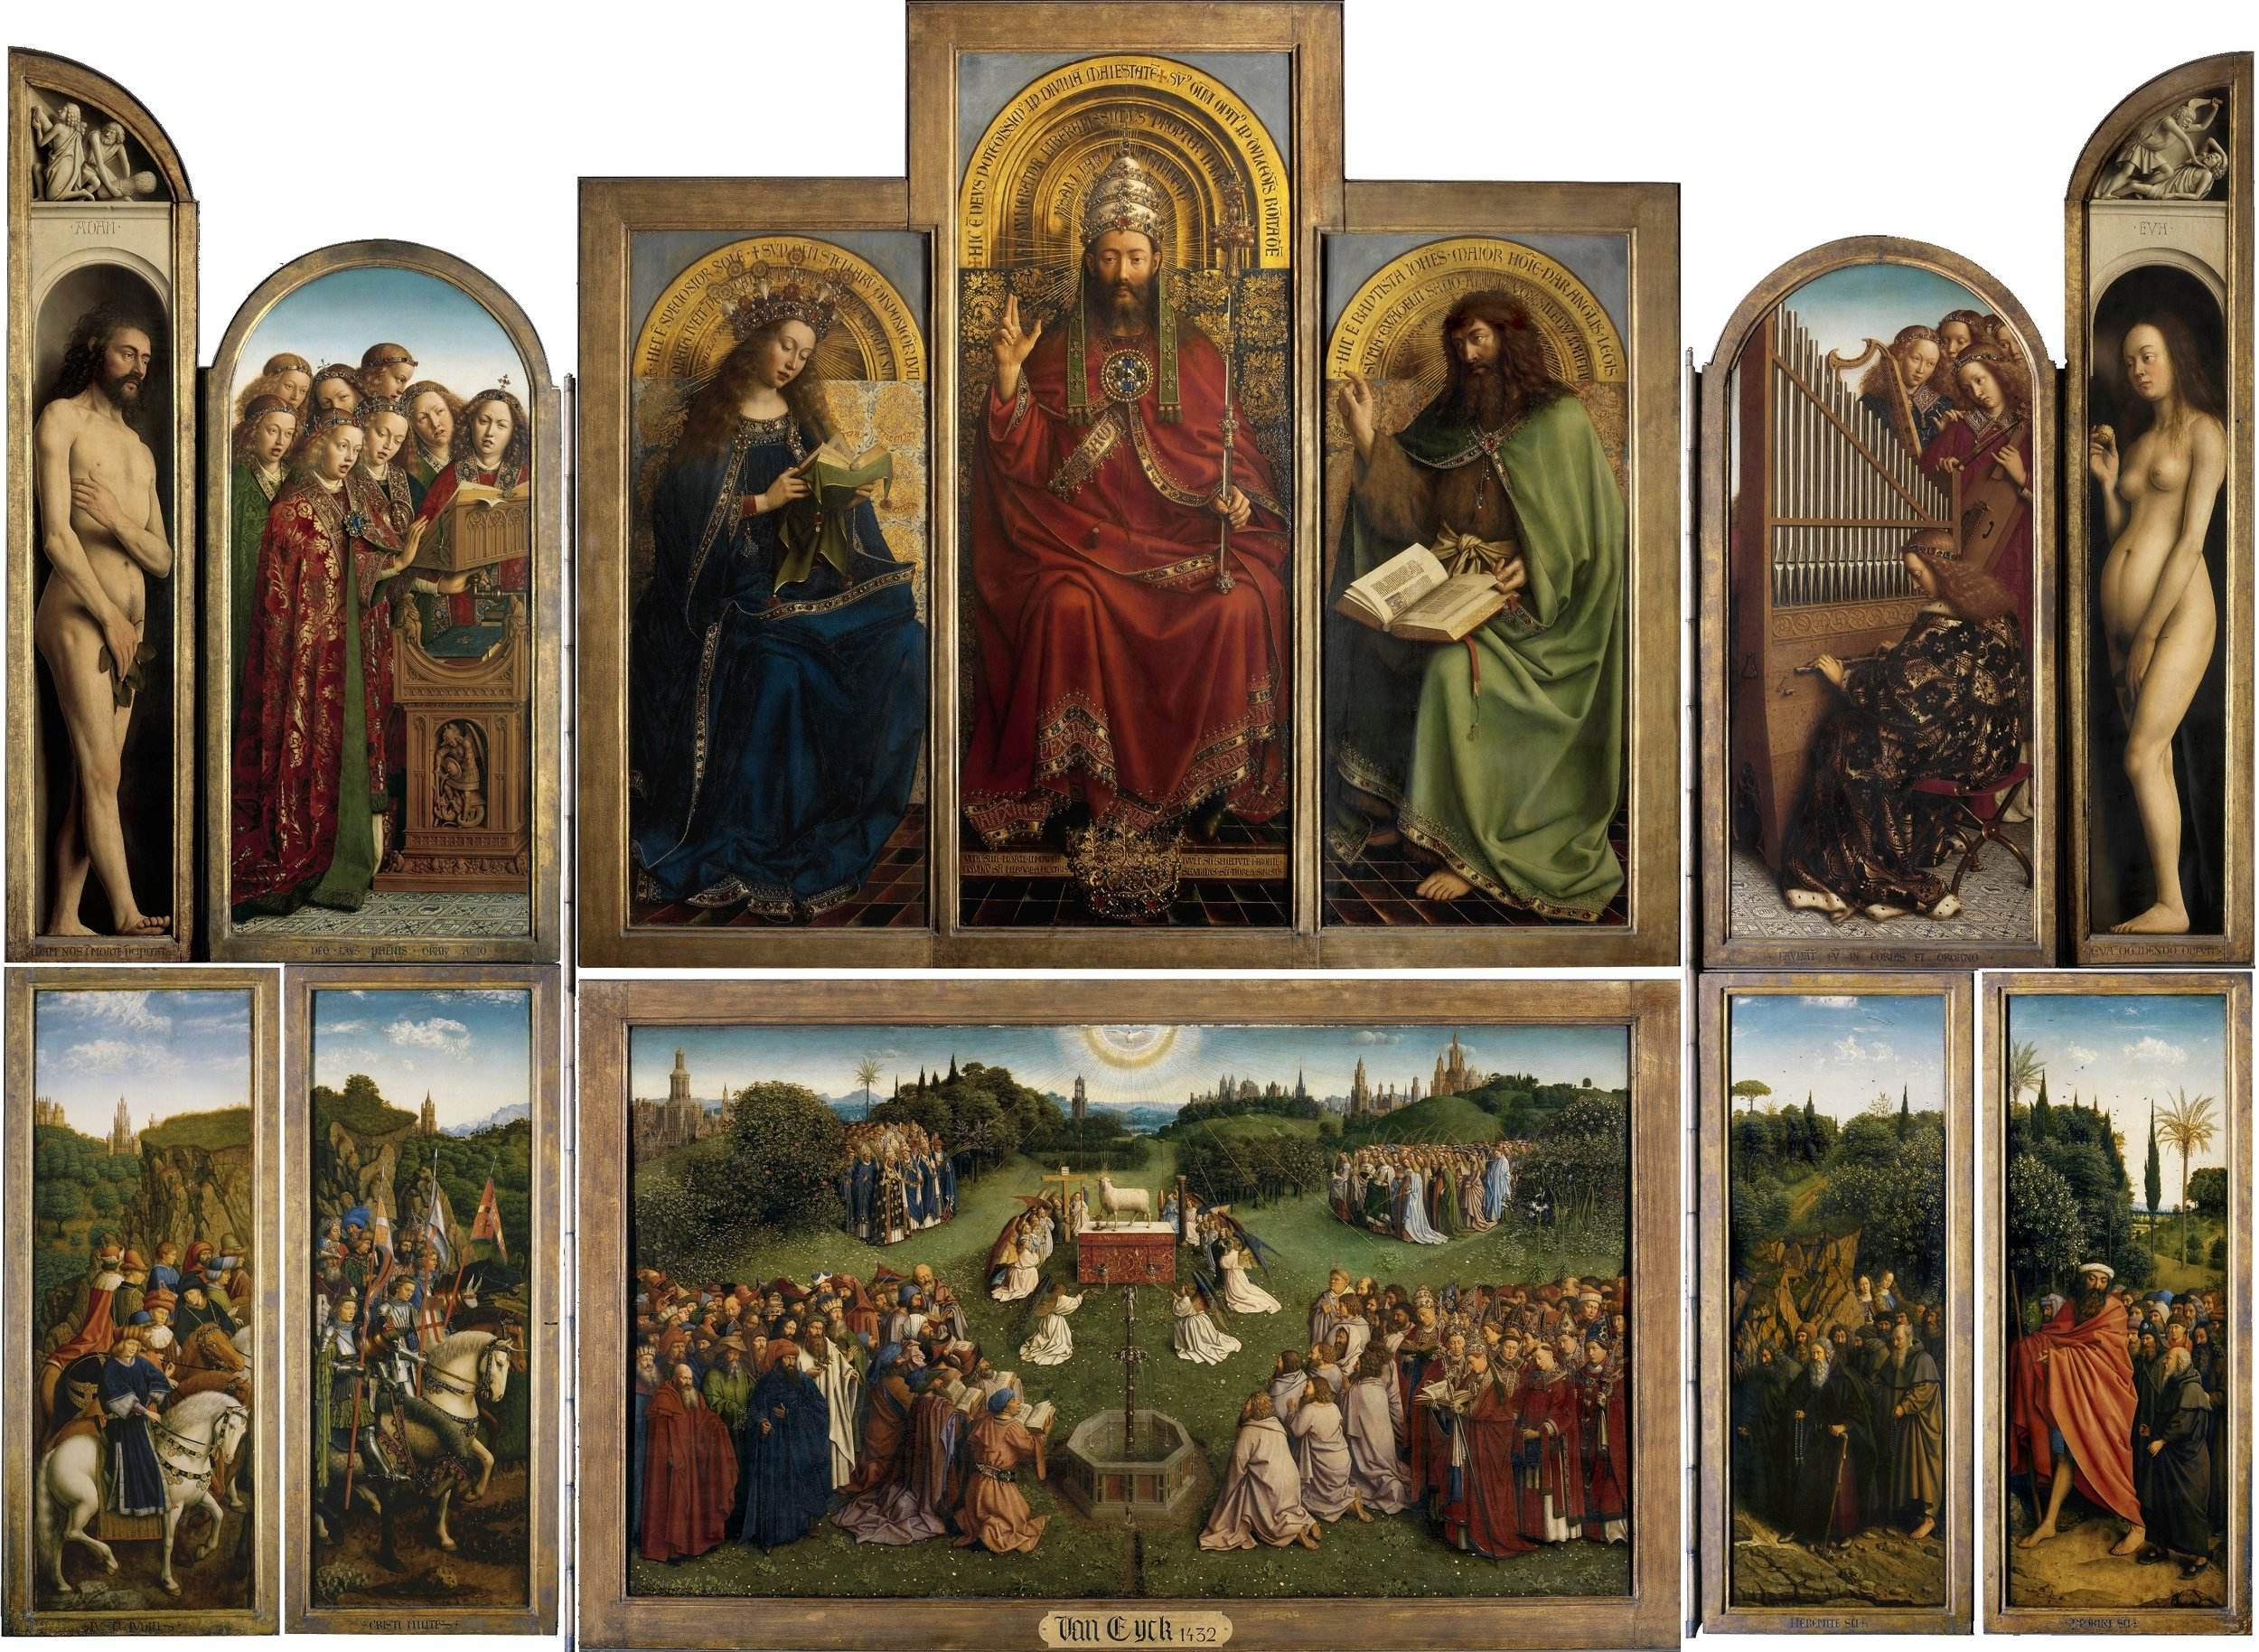 One of the highlights is Van Eyck's altar piece in St. Bavo's cathedral. More information in  Wikipedia .